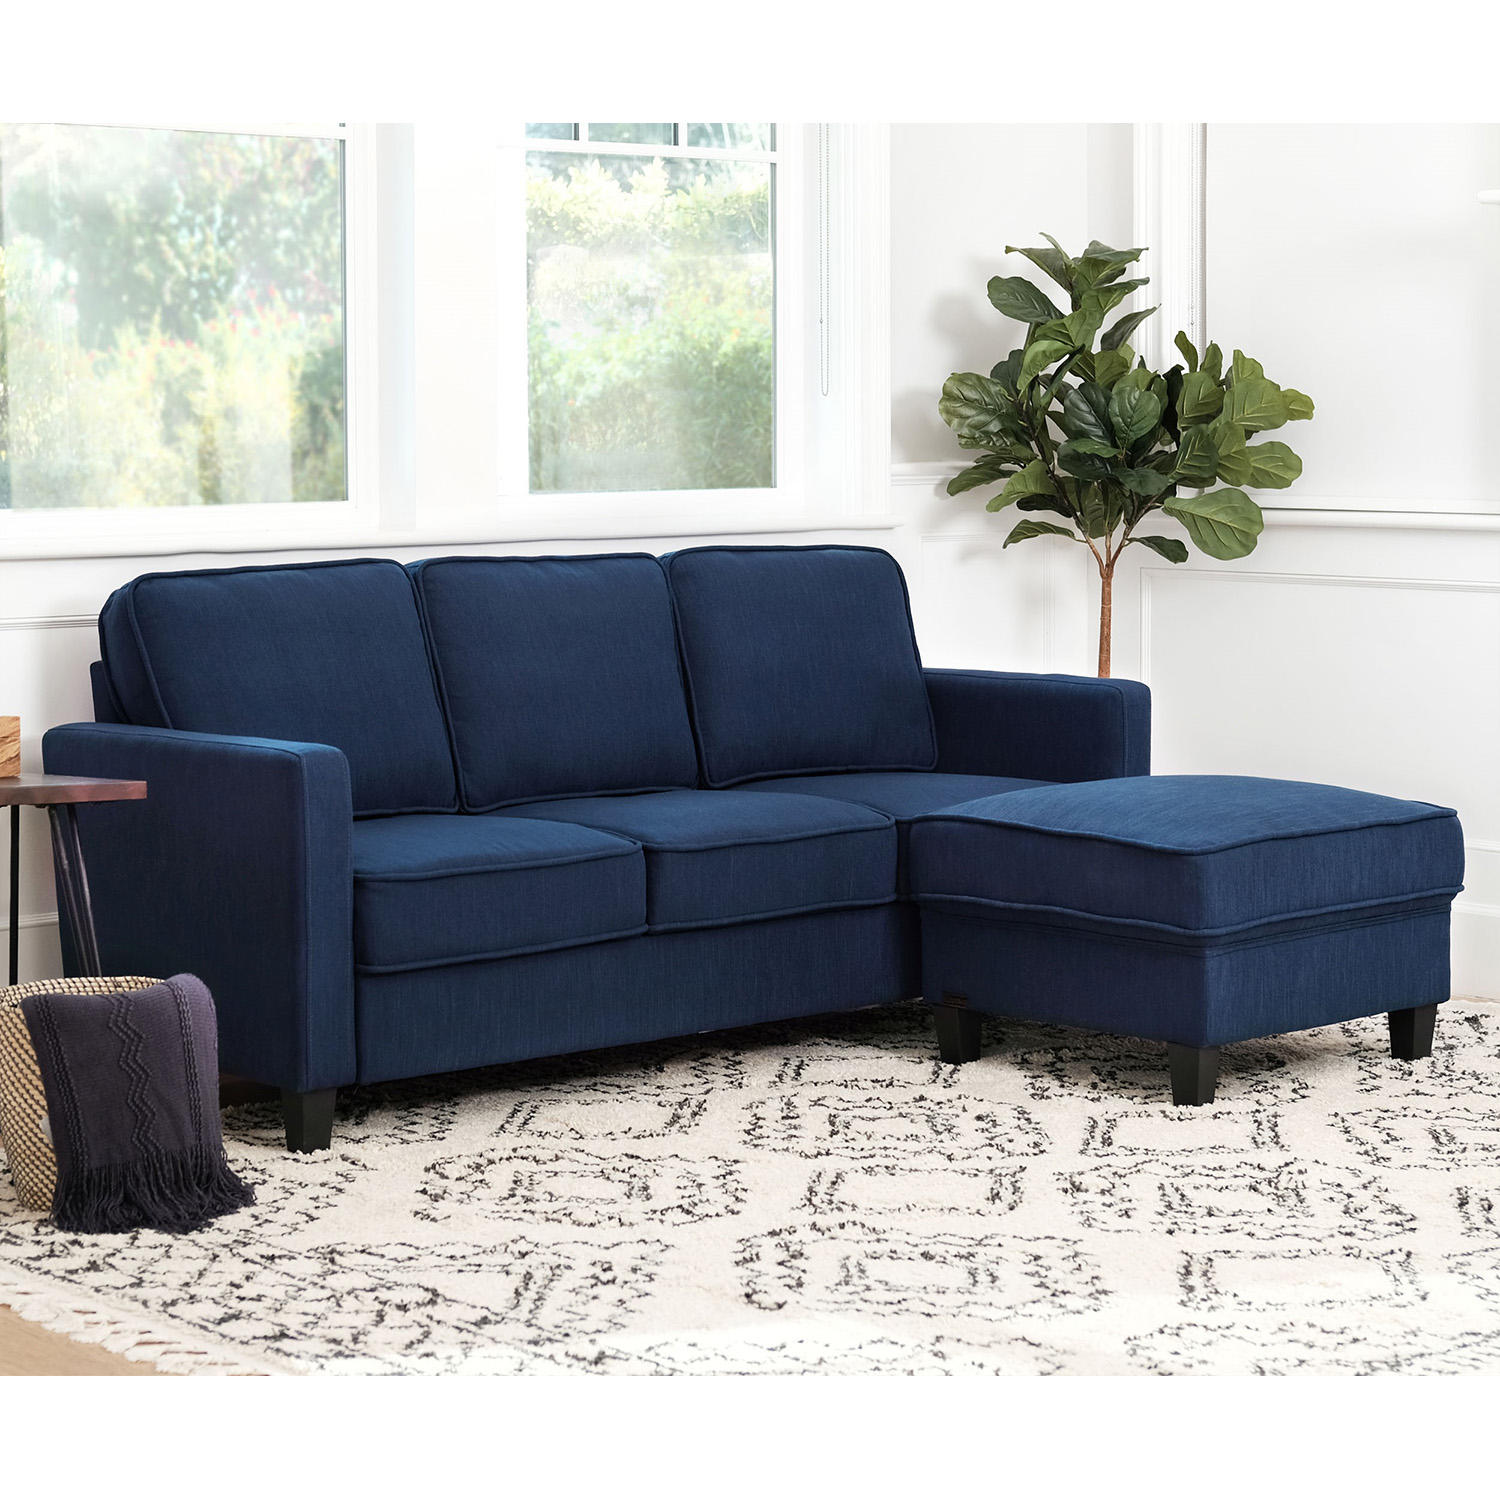 Abbyson Living Princeton Fabric Sofa and Ottoman Set